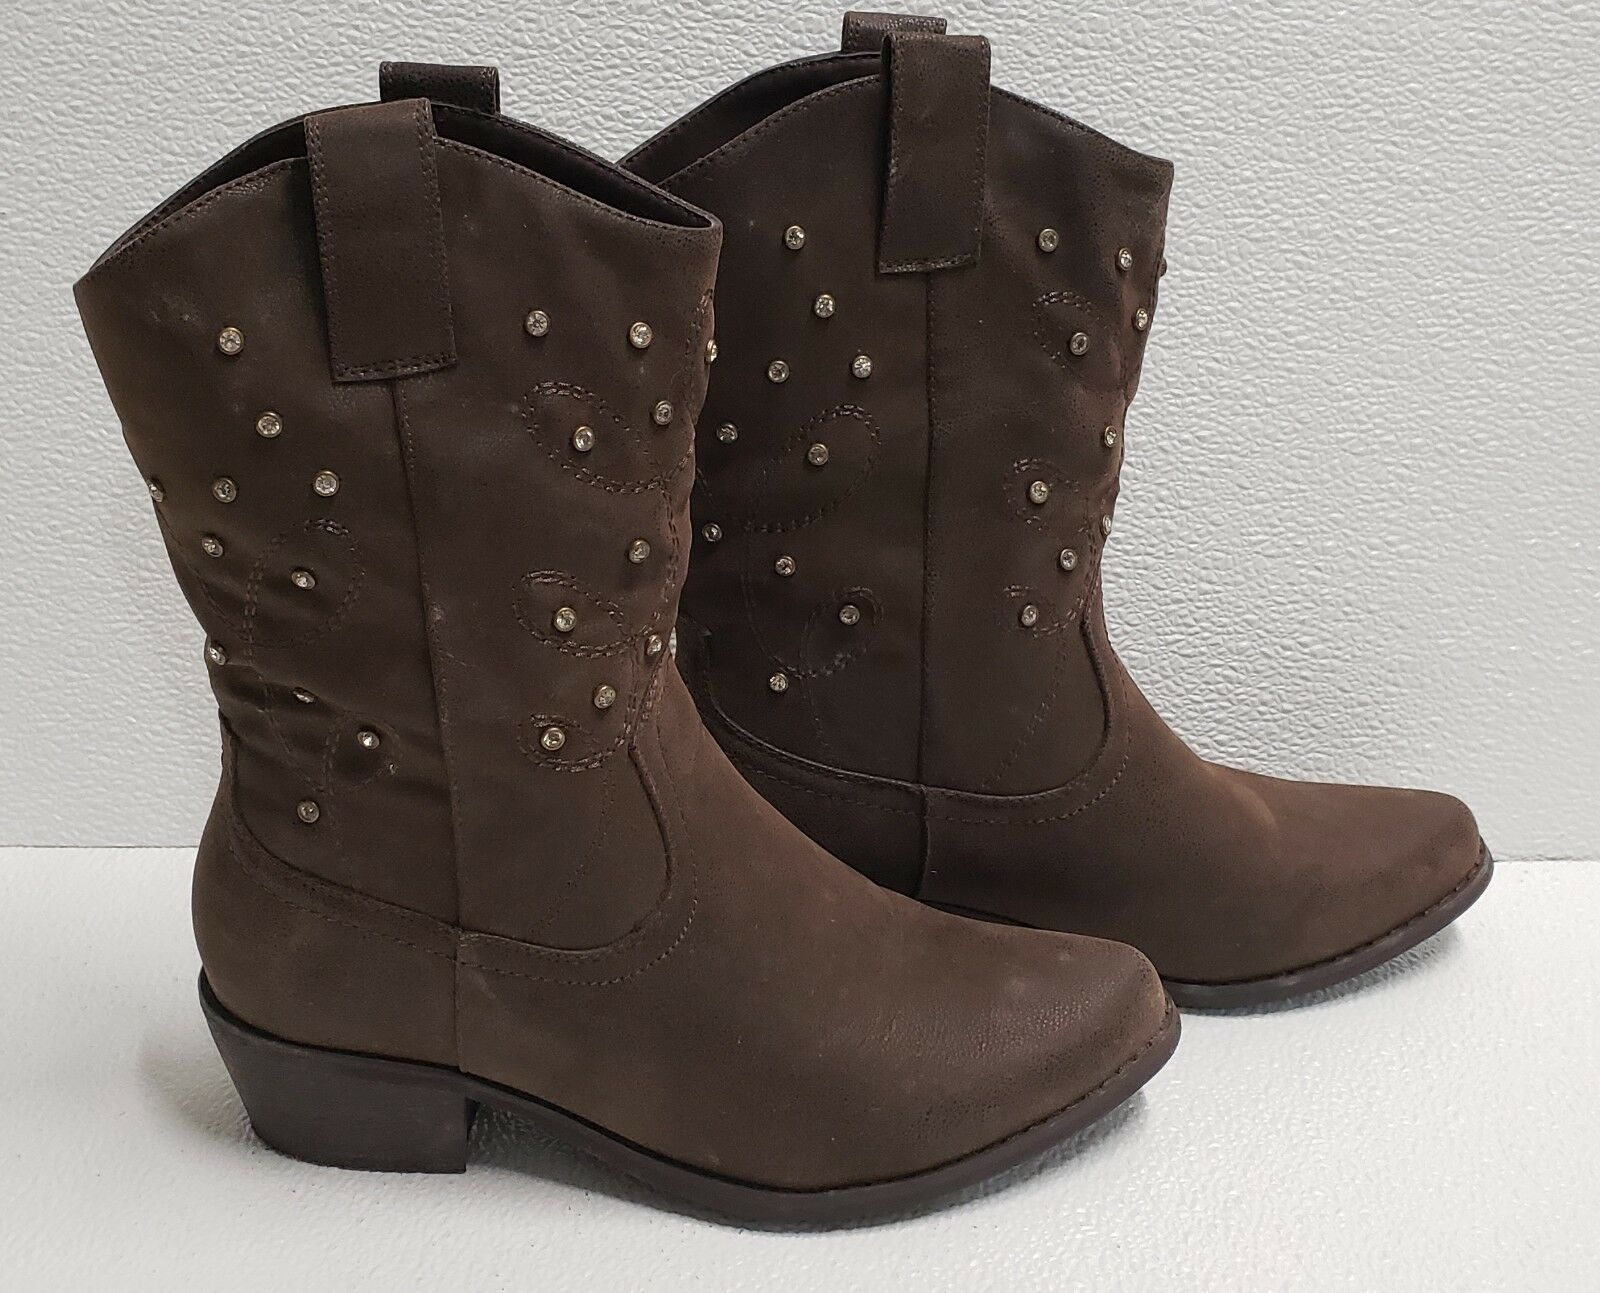 Boots Cowboy Chocolate Brown Jewel Rhinestone Leather Suede Calf Women Size 7.5